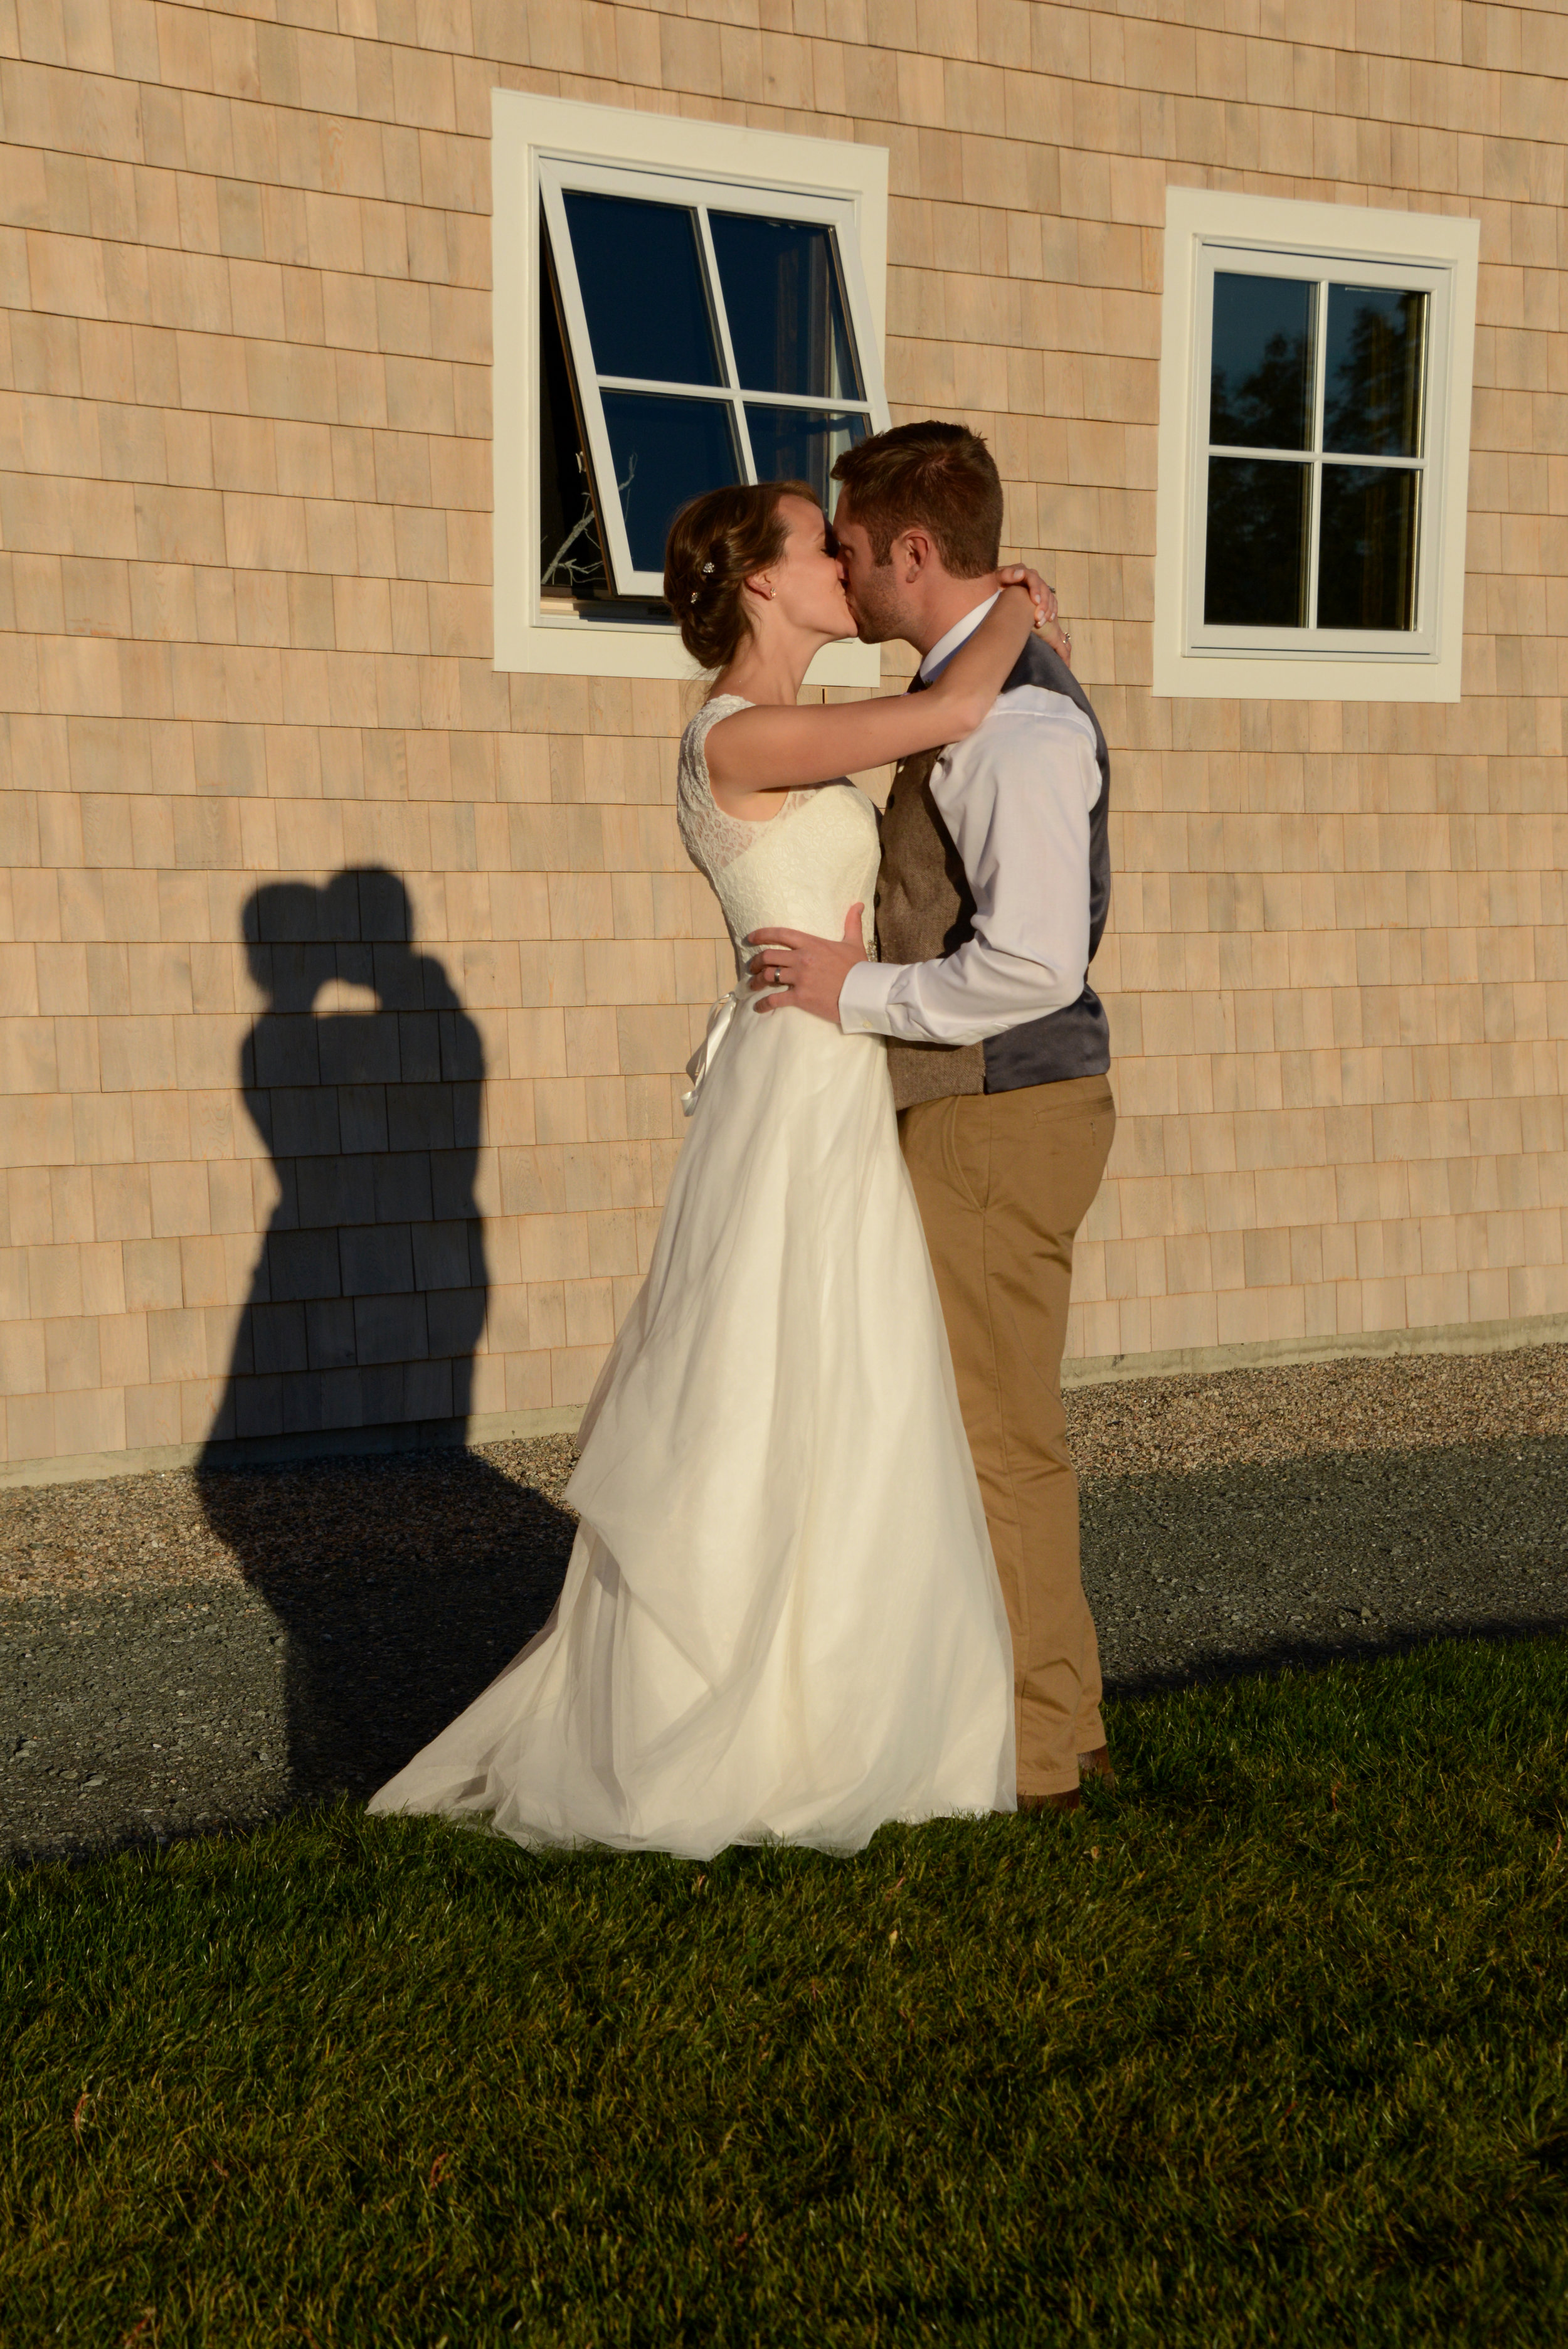 DeniseEPhotography_Wedding042.jpg